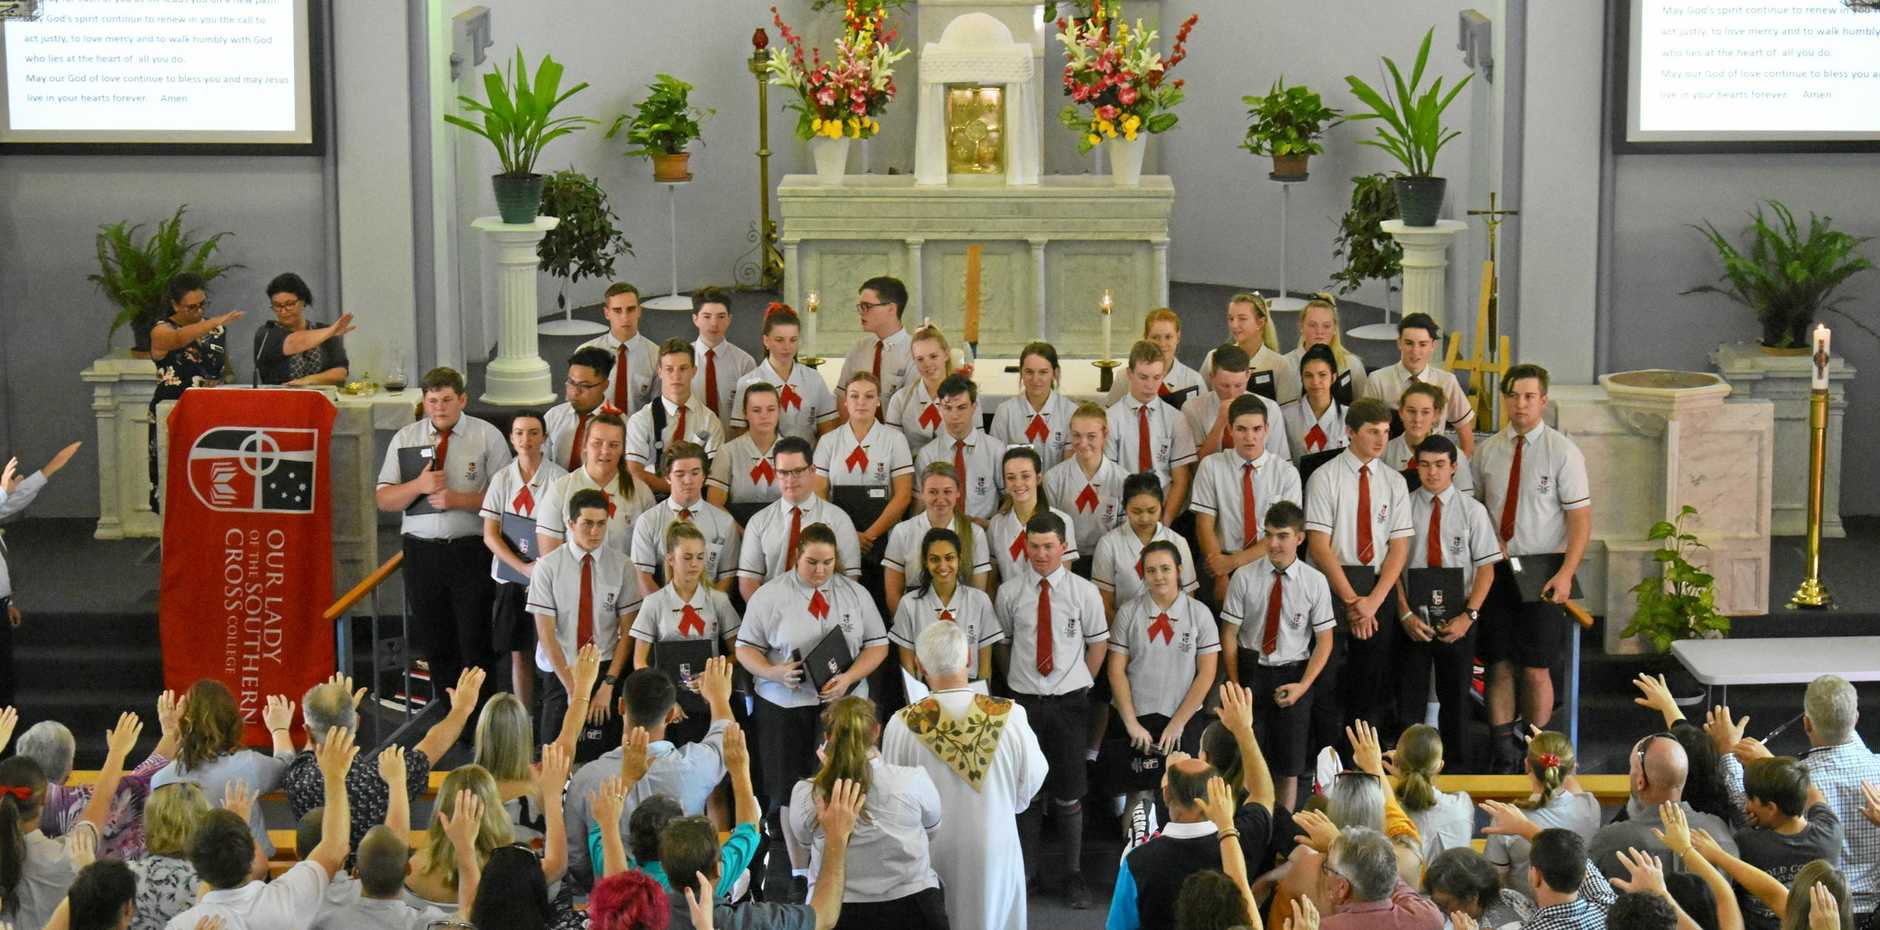 Students from Our Lady of the Southern Cross College graduate at St Jospeh's Catholic Church, 2018